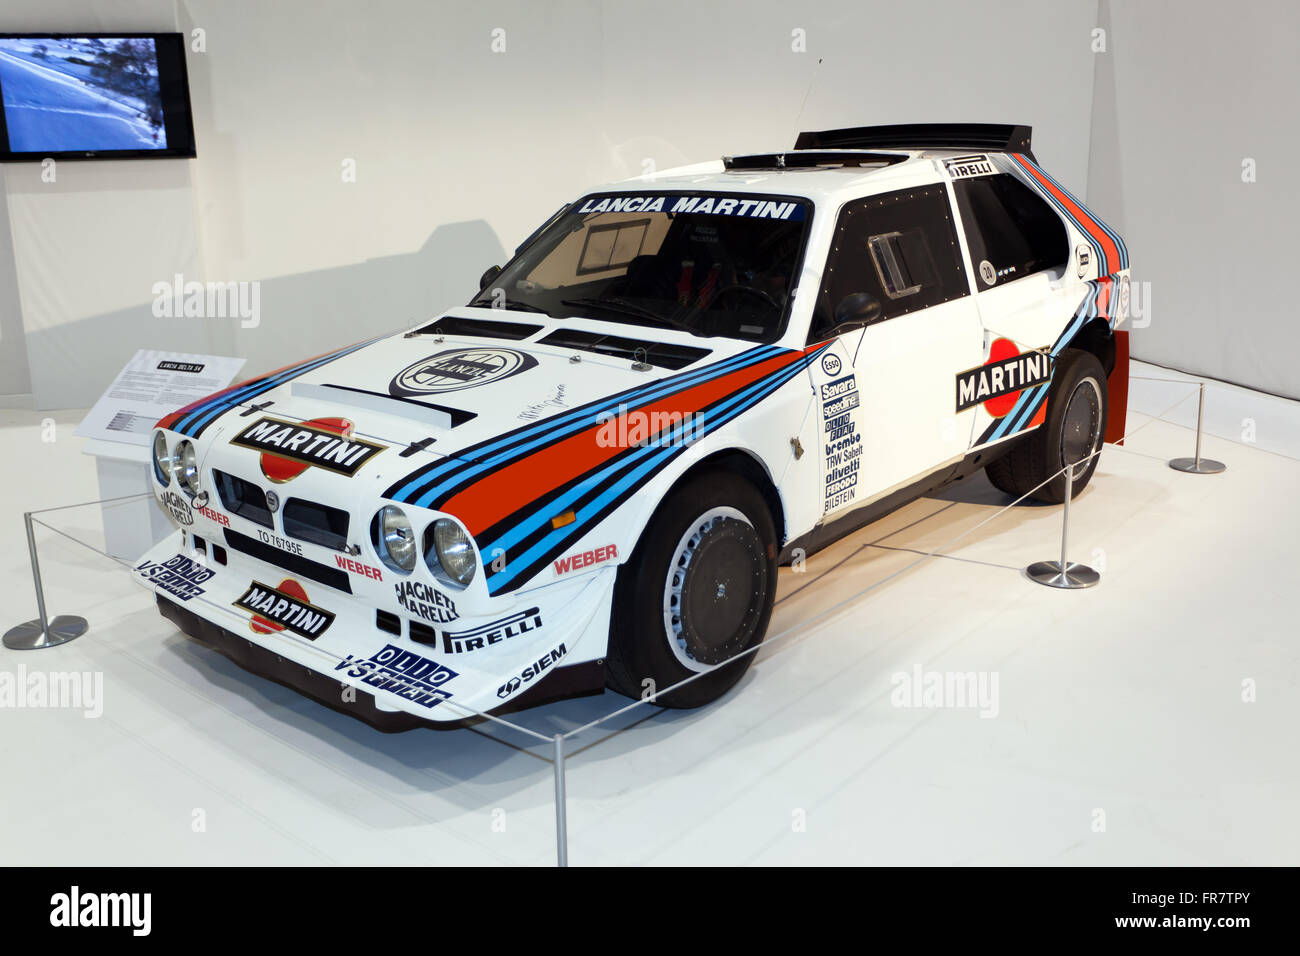 a lancia delta s4 group b rally car on display in the pinnacle of stock photo 100362051 alamy. Black Bedroom Furniture Sets. Home Design Ideas